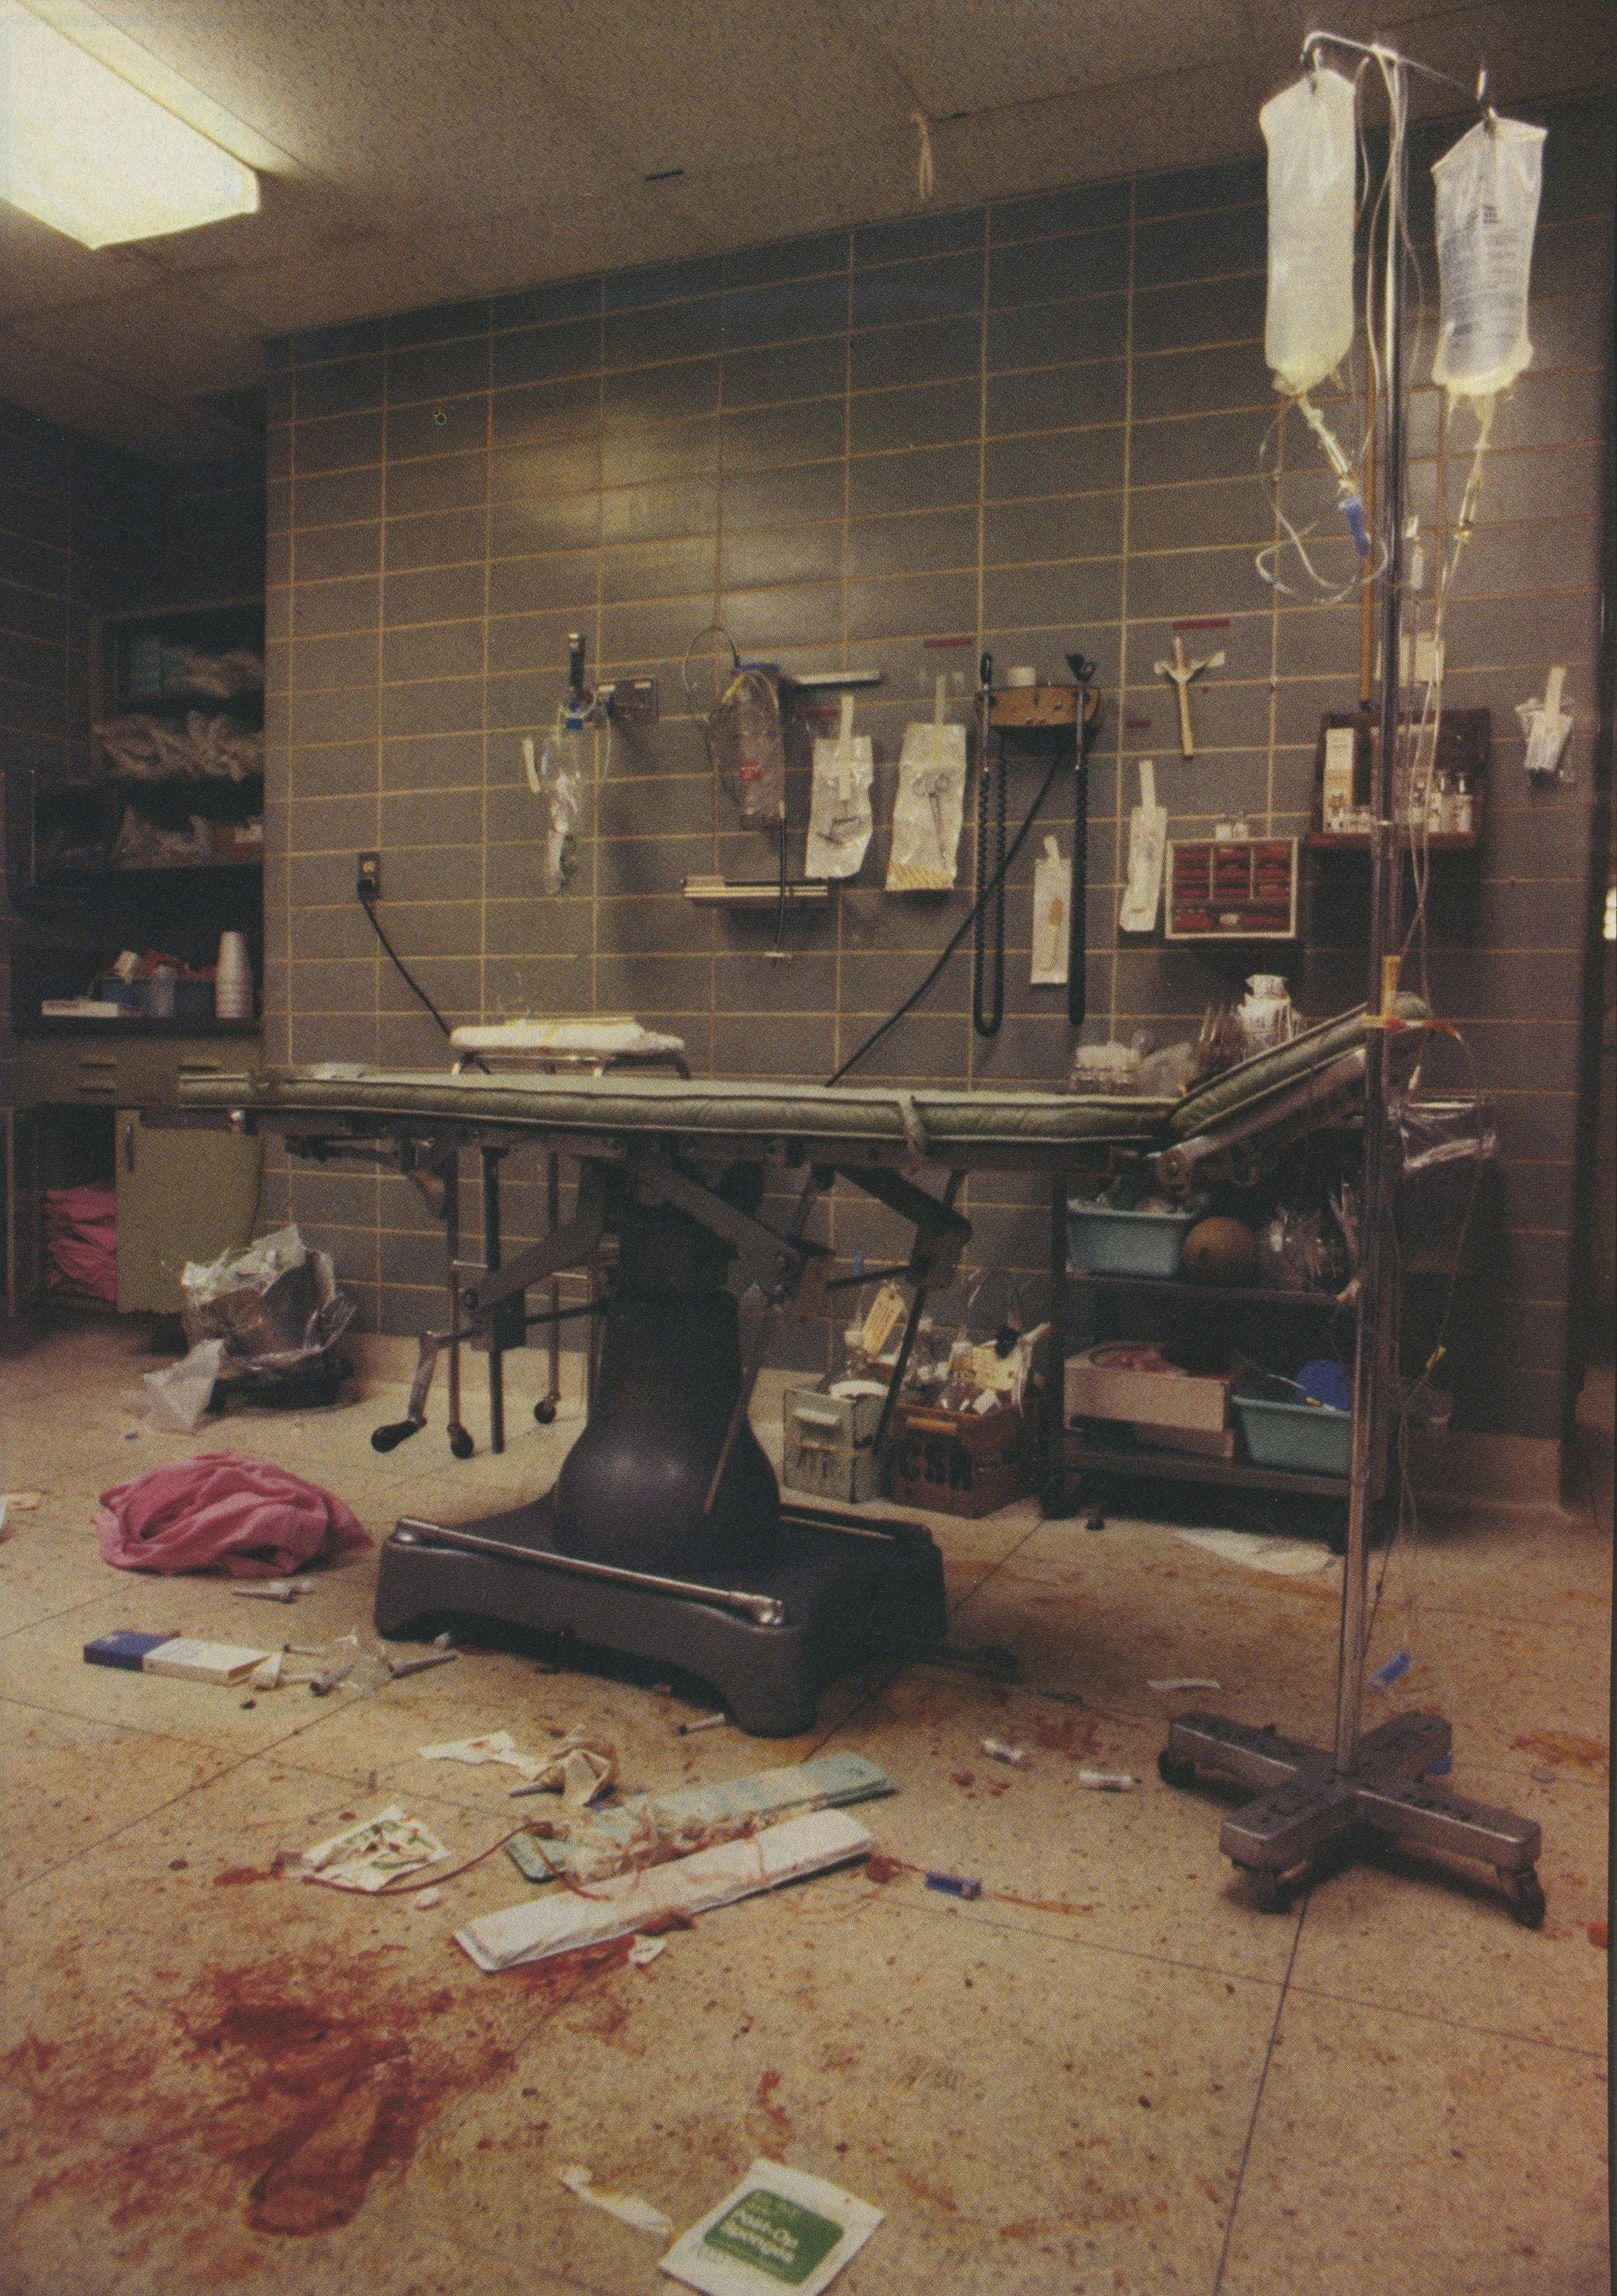 In the aftermath of treatment of an emergency patient, the shock room resembles an abandoned battlefield. This is not the end, however, but a momentary lull in the night's work in this backup room. Within a few minutes, the housekeeping crew will put things back together for the next case.